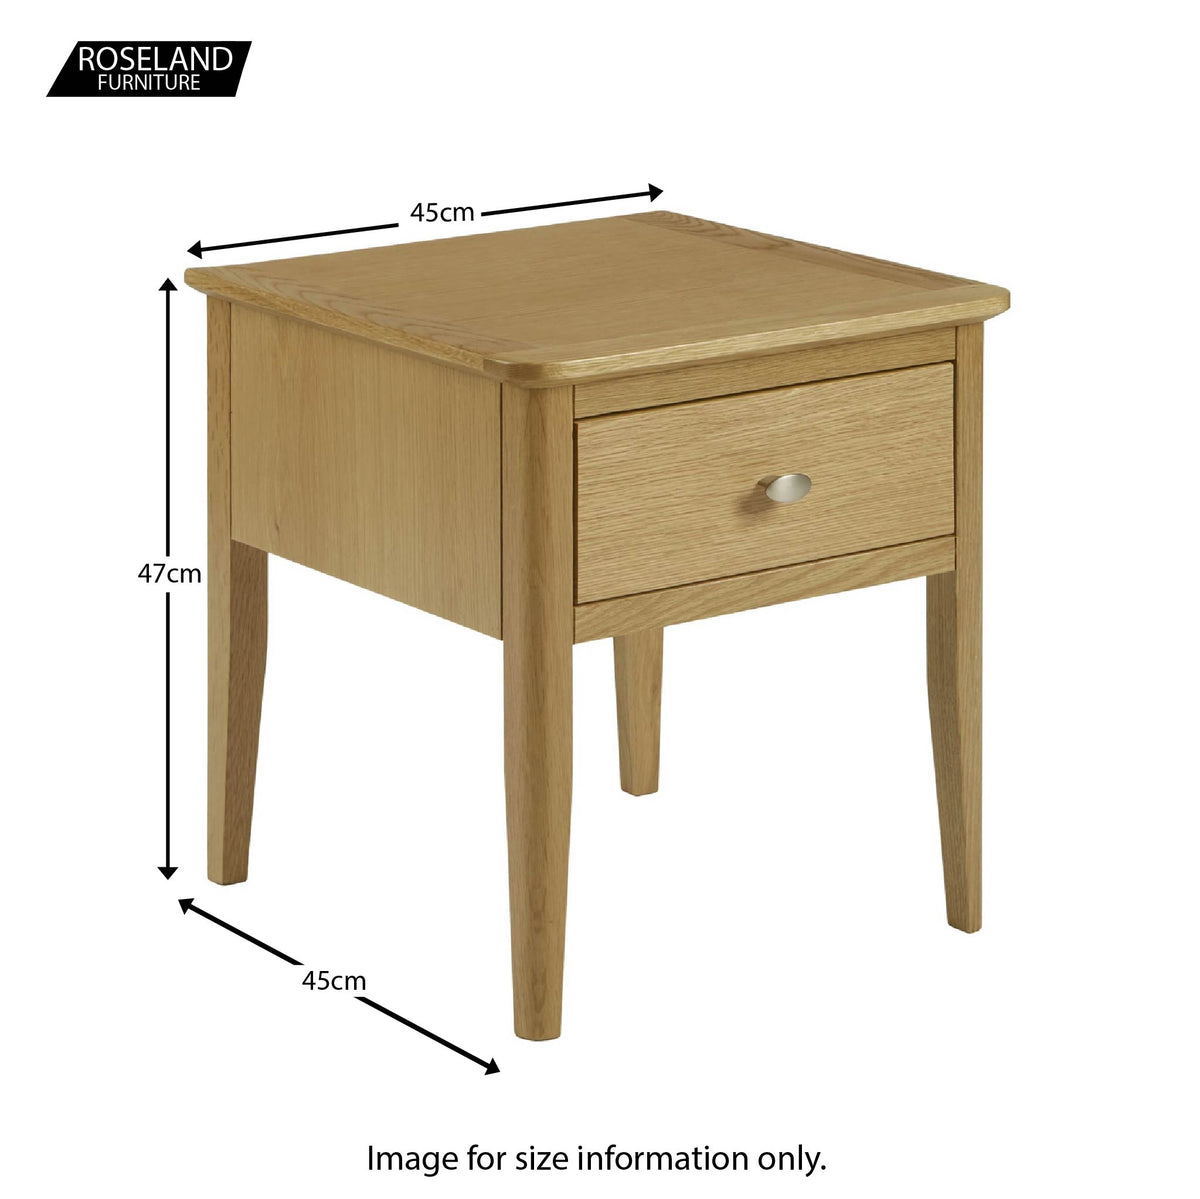 Alba Oak Lamp Table - Size guide